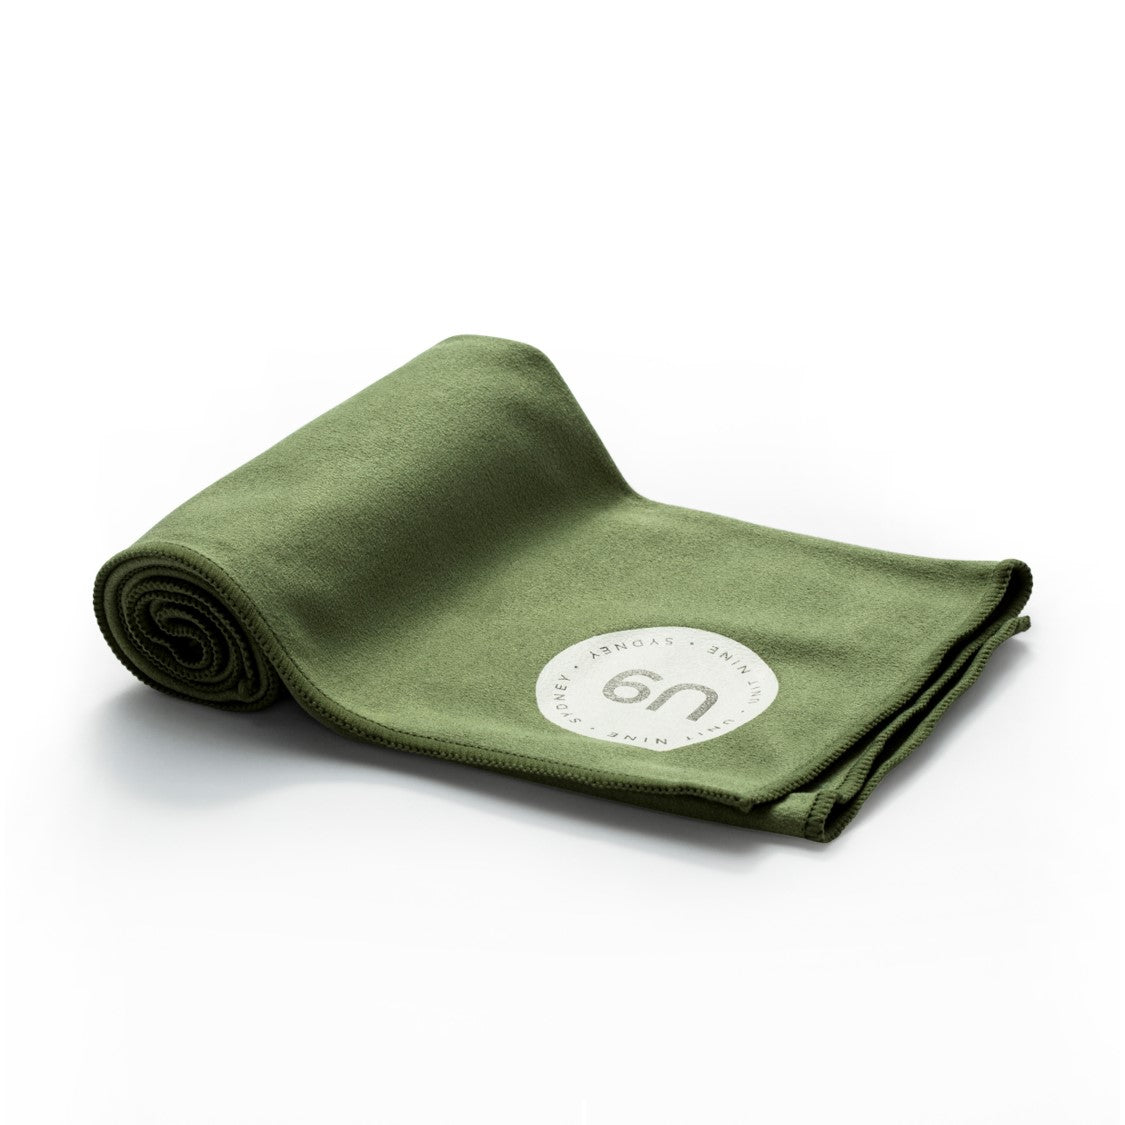 UNIT NINE Khaki sweat towel